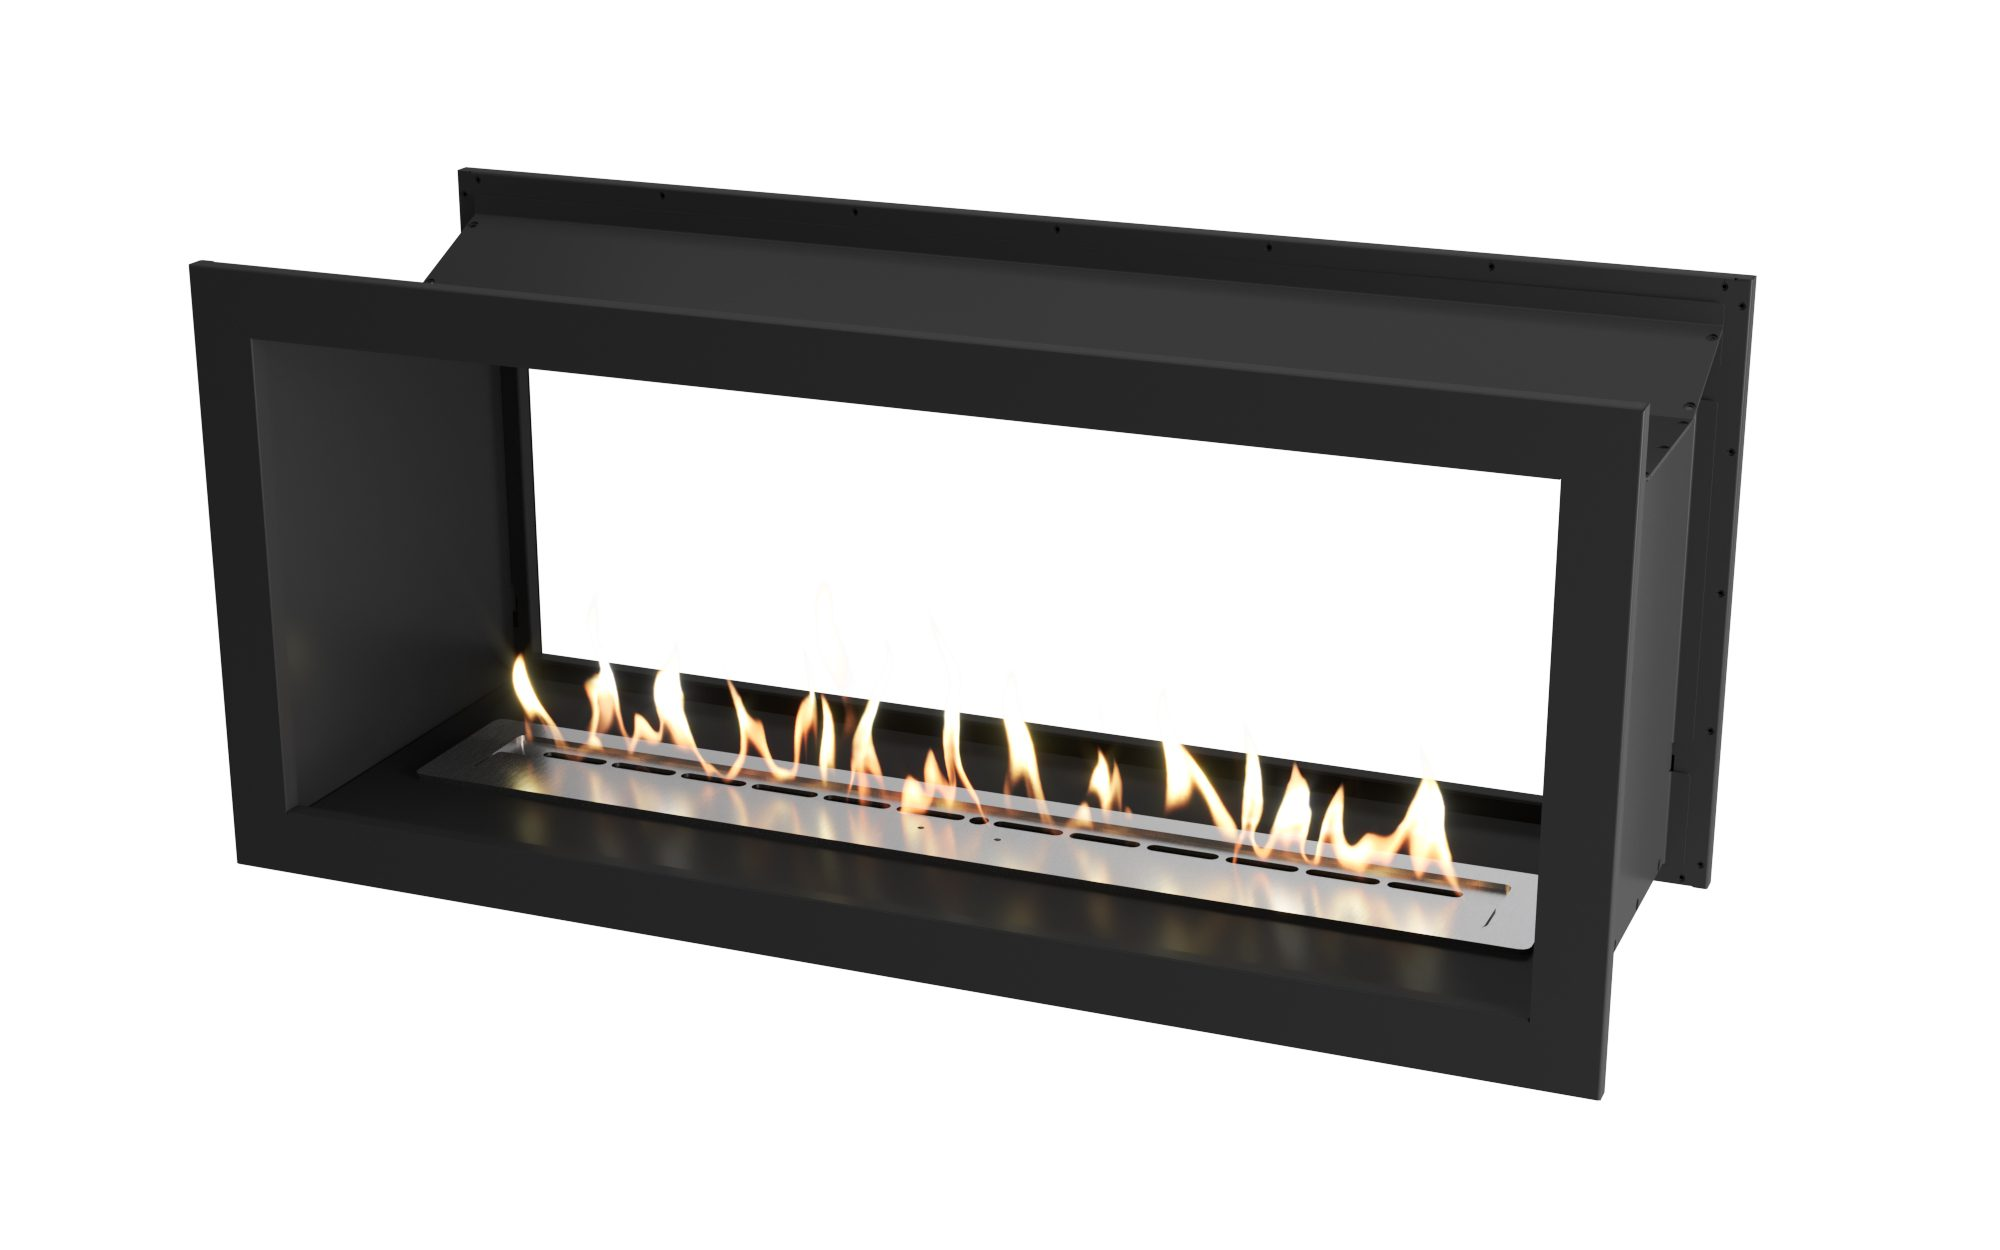 1350 Black double sided firebox with 110